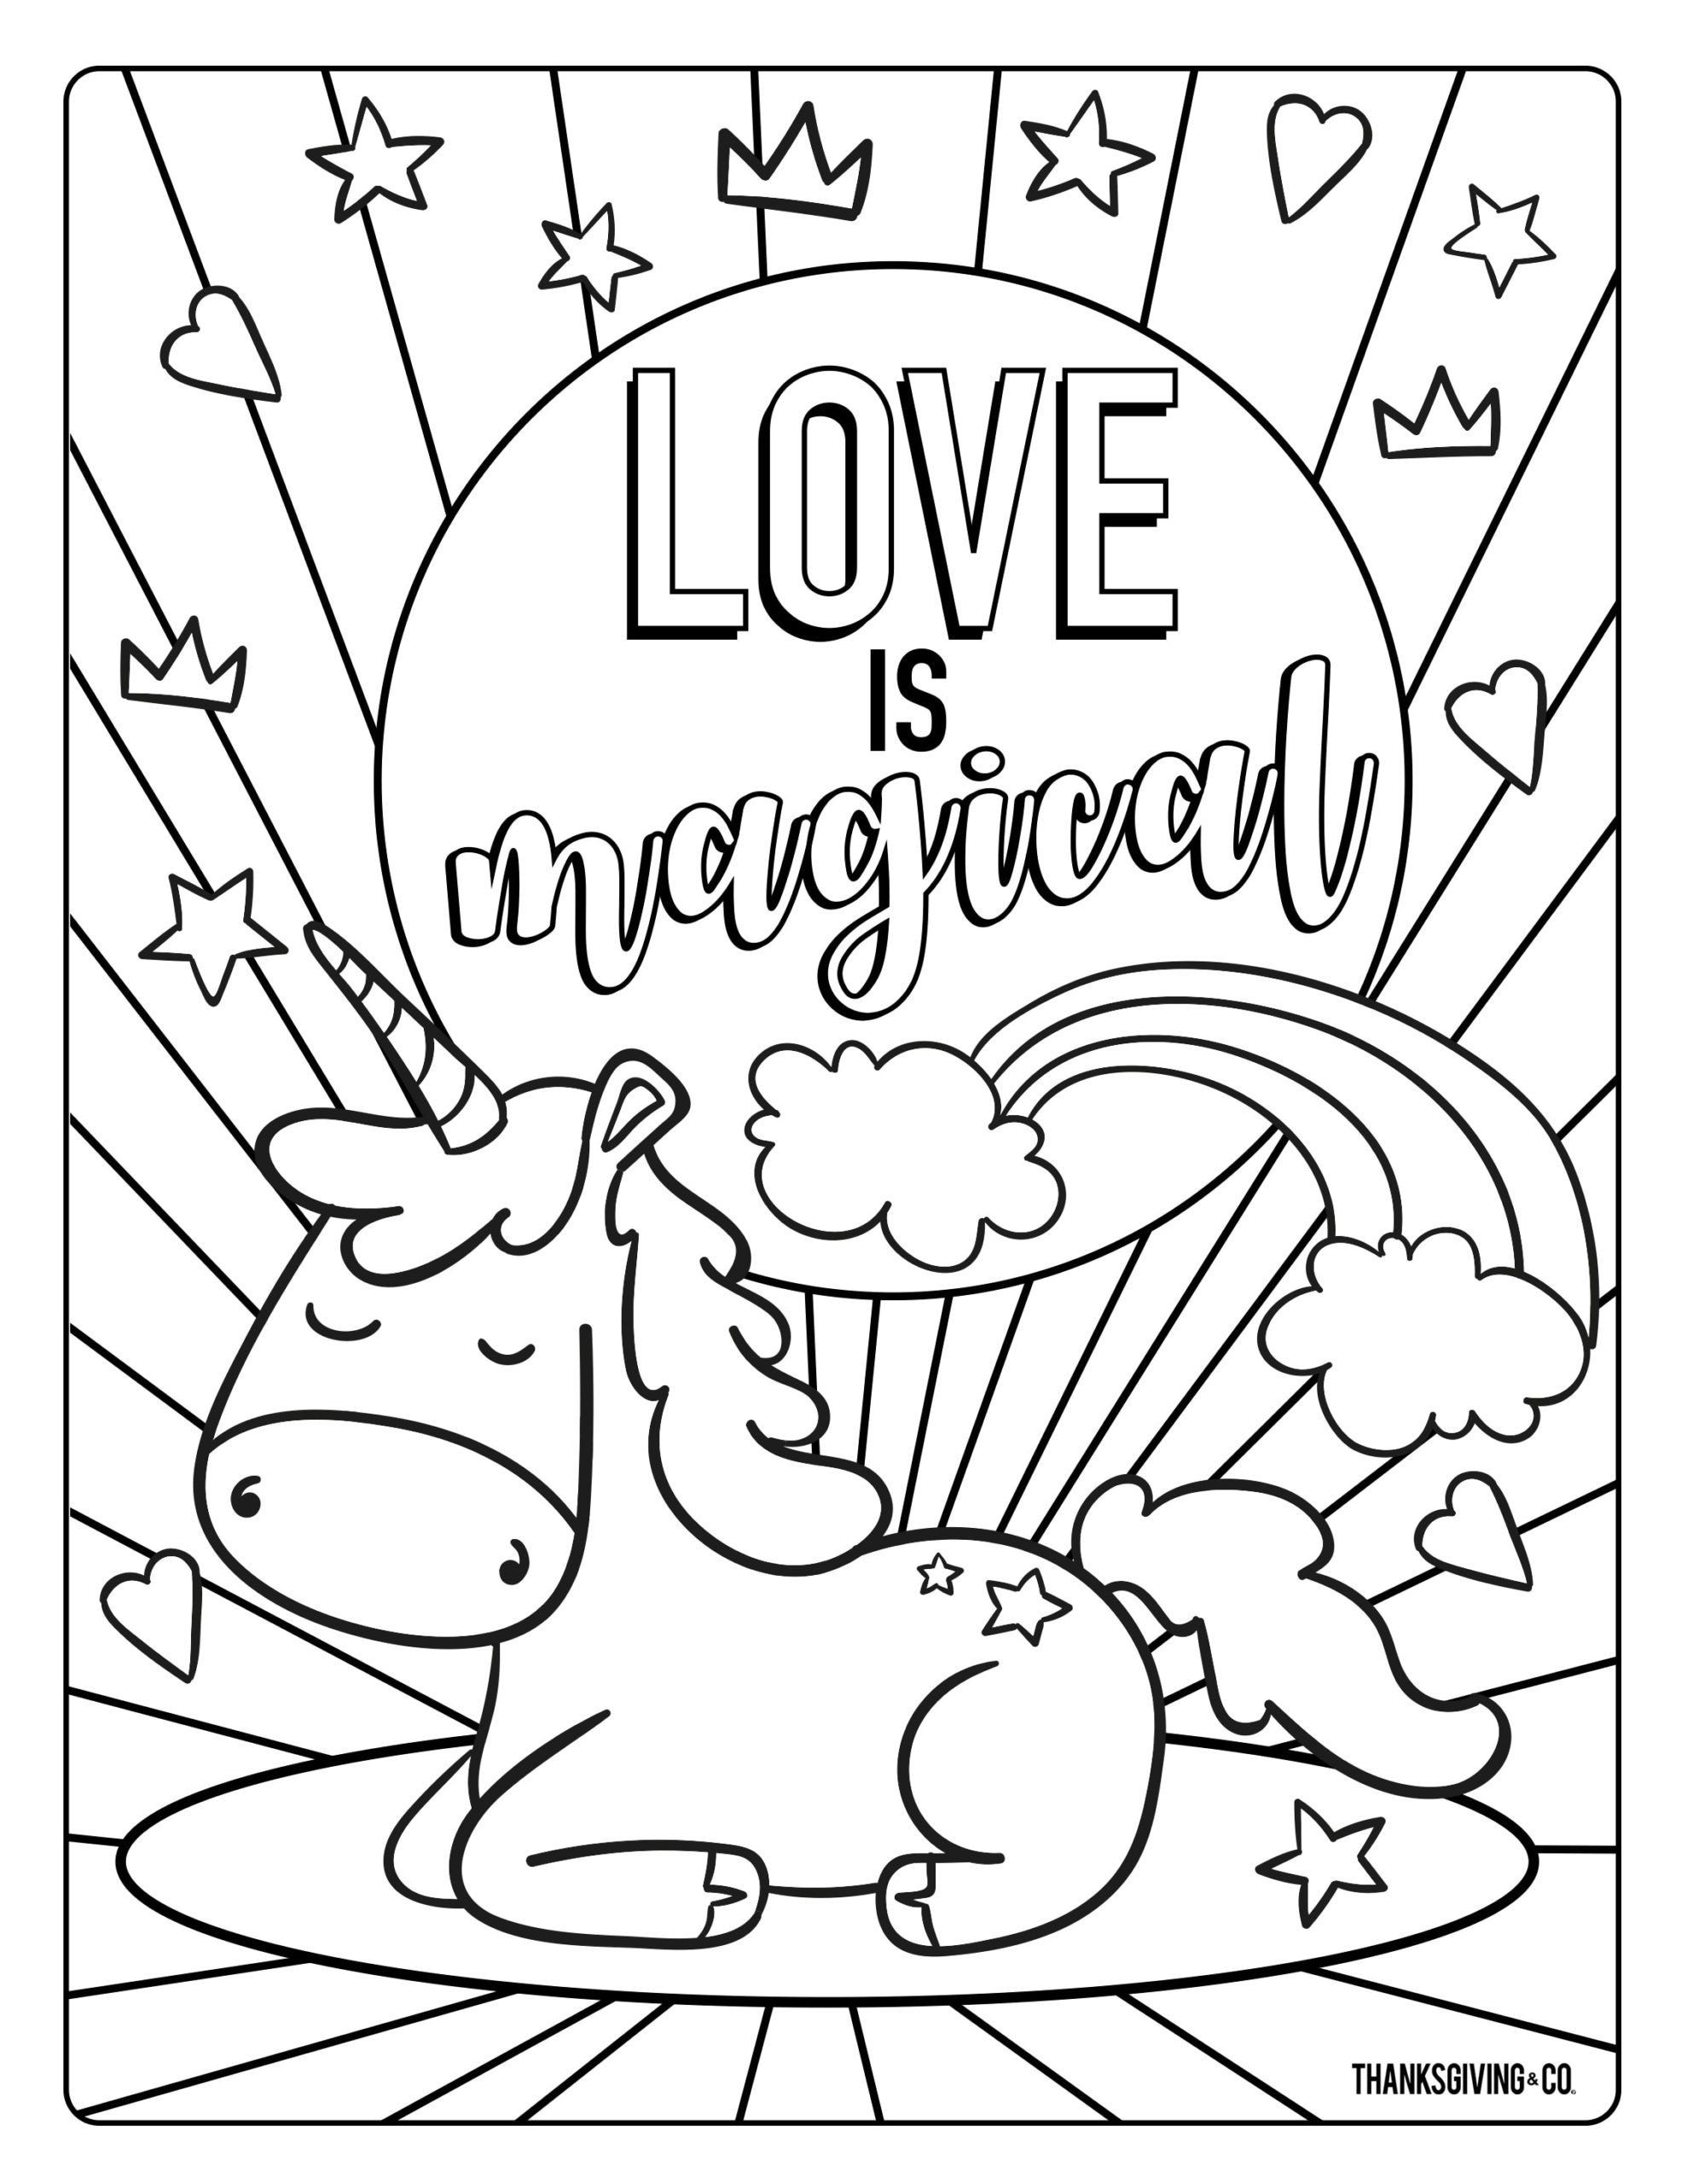 Coloring Pages Com Free Coloring Book Coloring Book Valentines Day Shee Crayola Coloring Pages Valentines Day Coloring Page Printable Valentines Coloring Pages